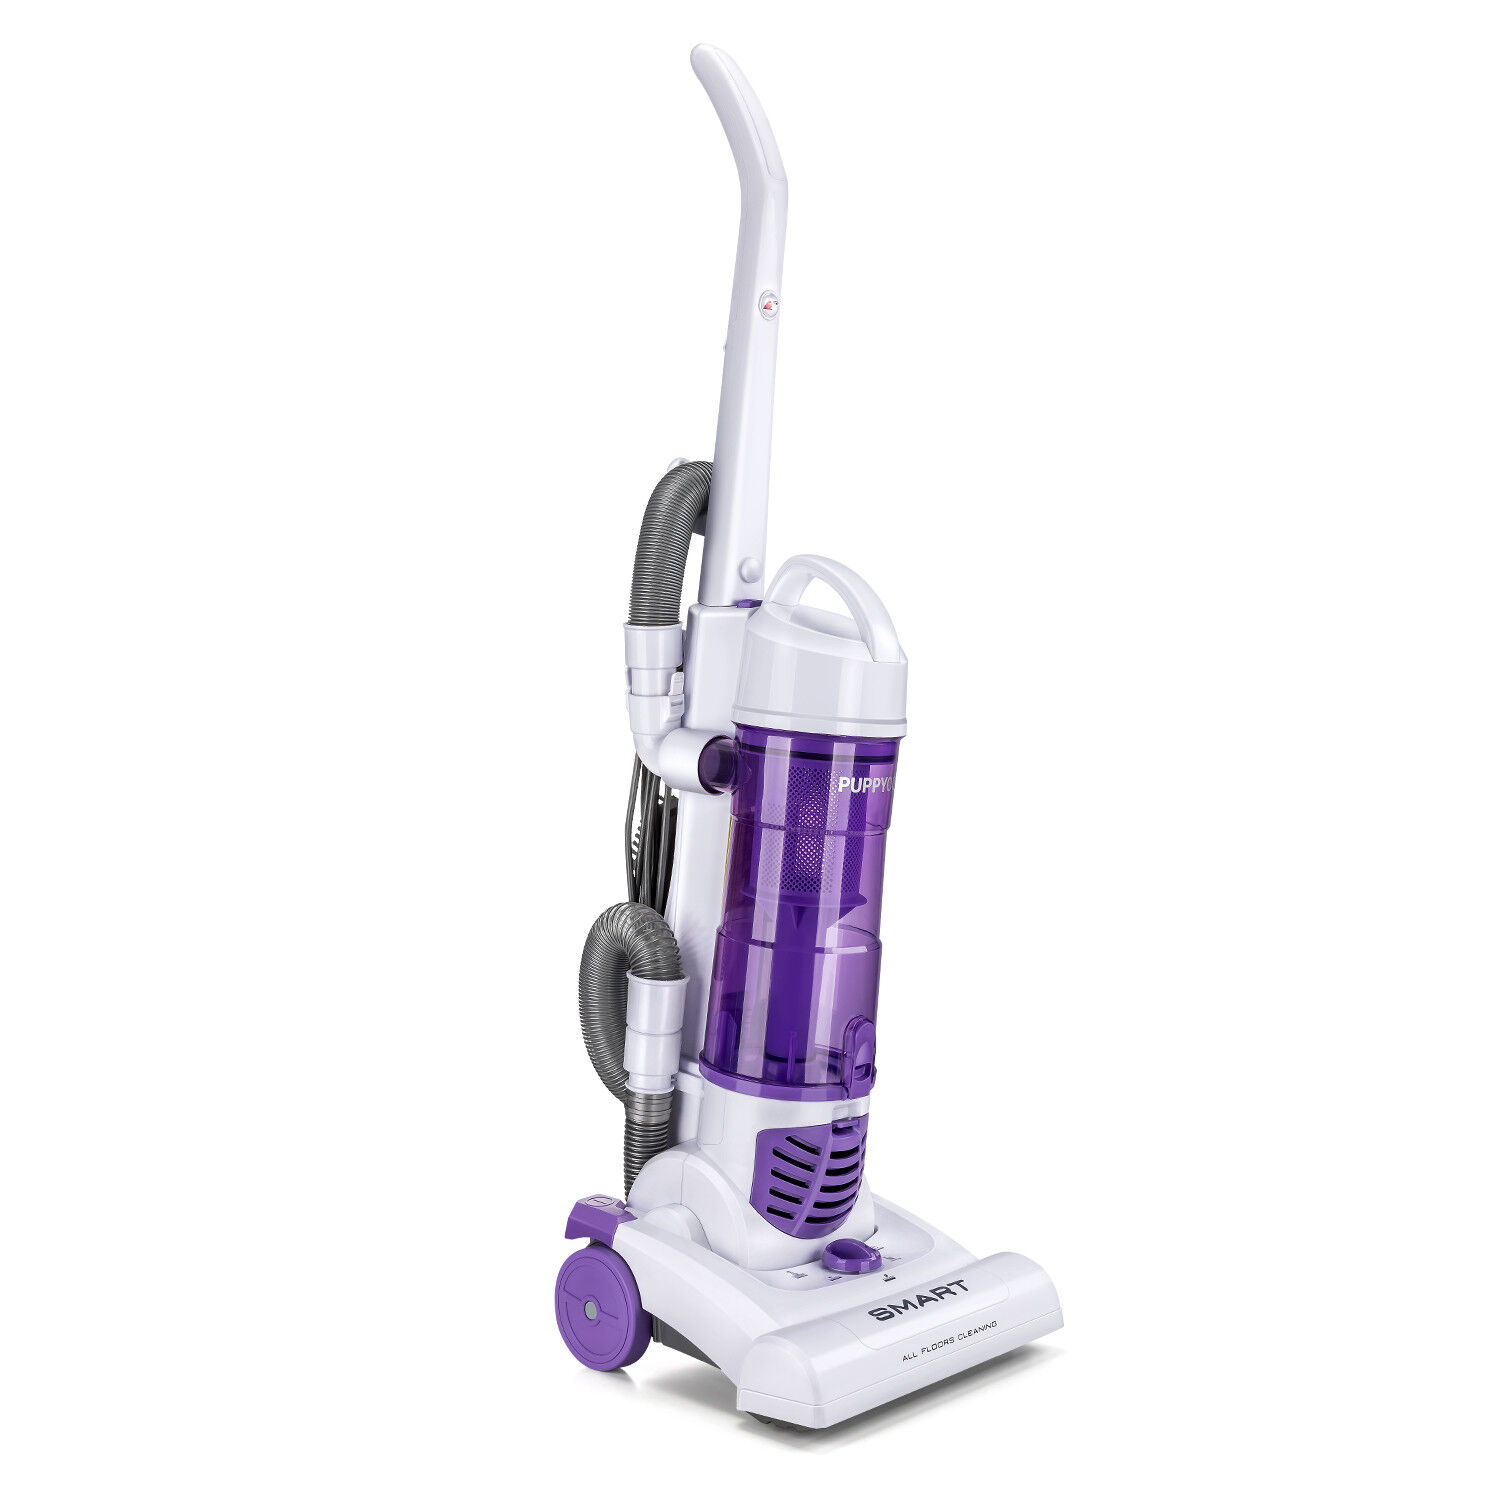 PUPPYOO S6 Upright Vacuum Cleaner Bagless Corded Lightweight